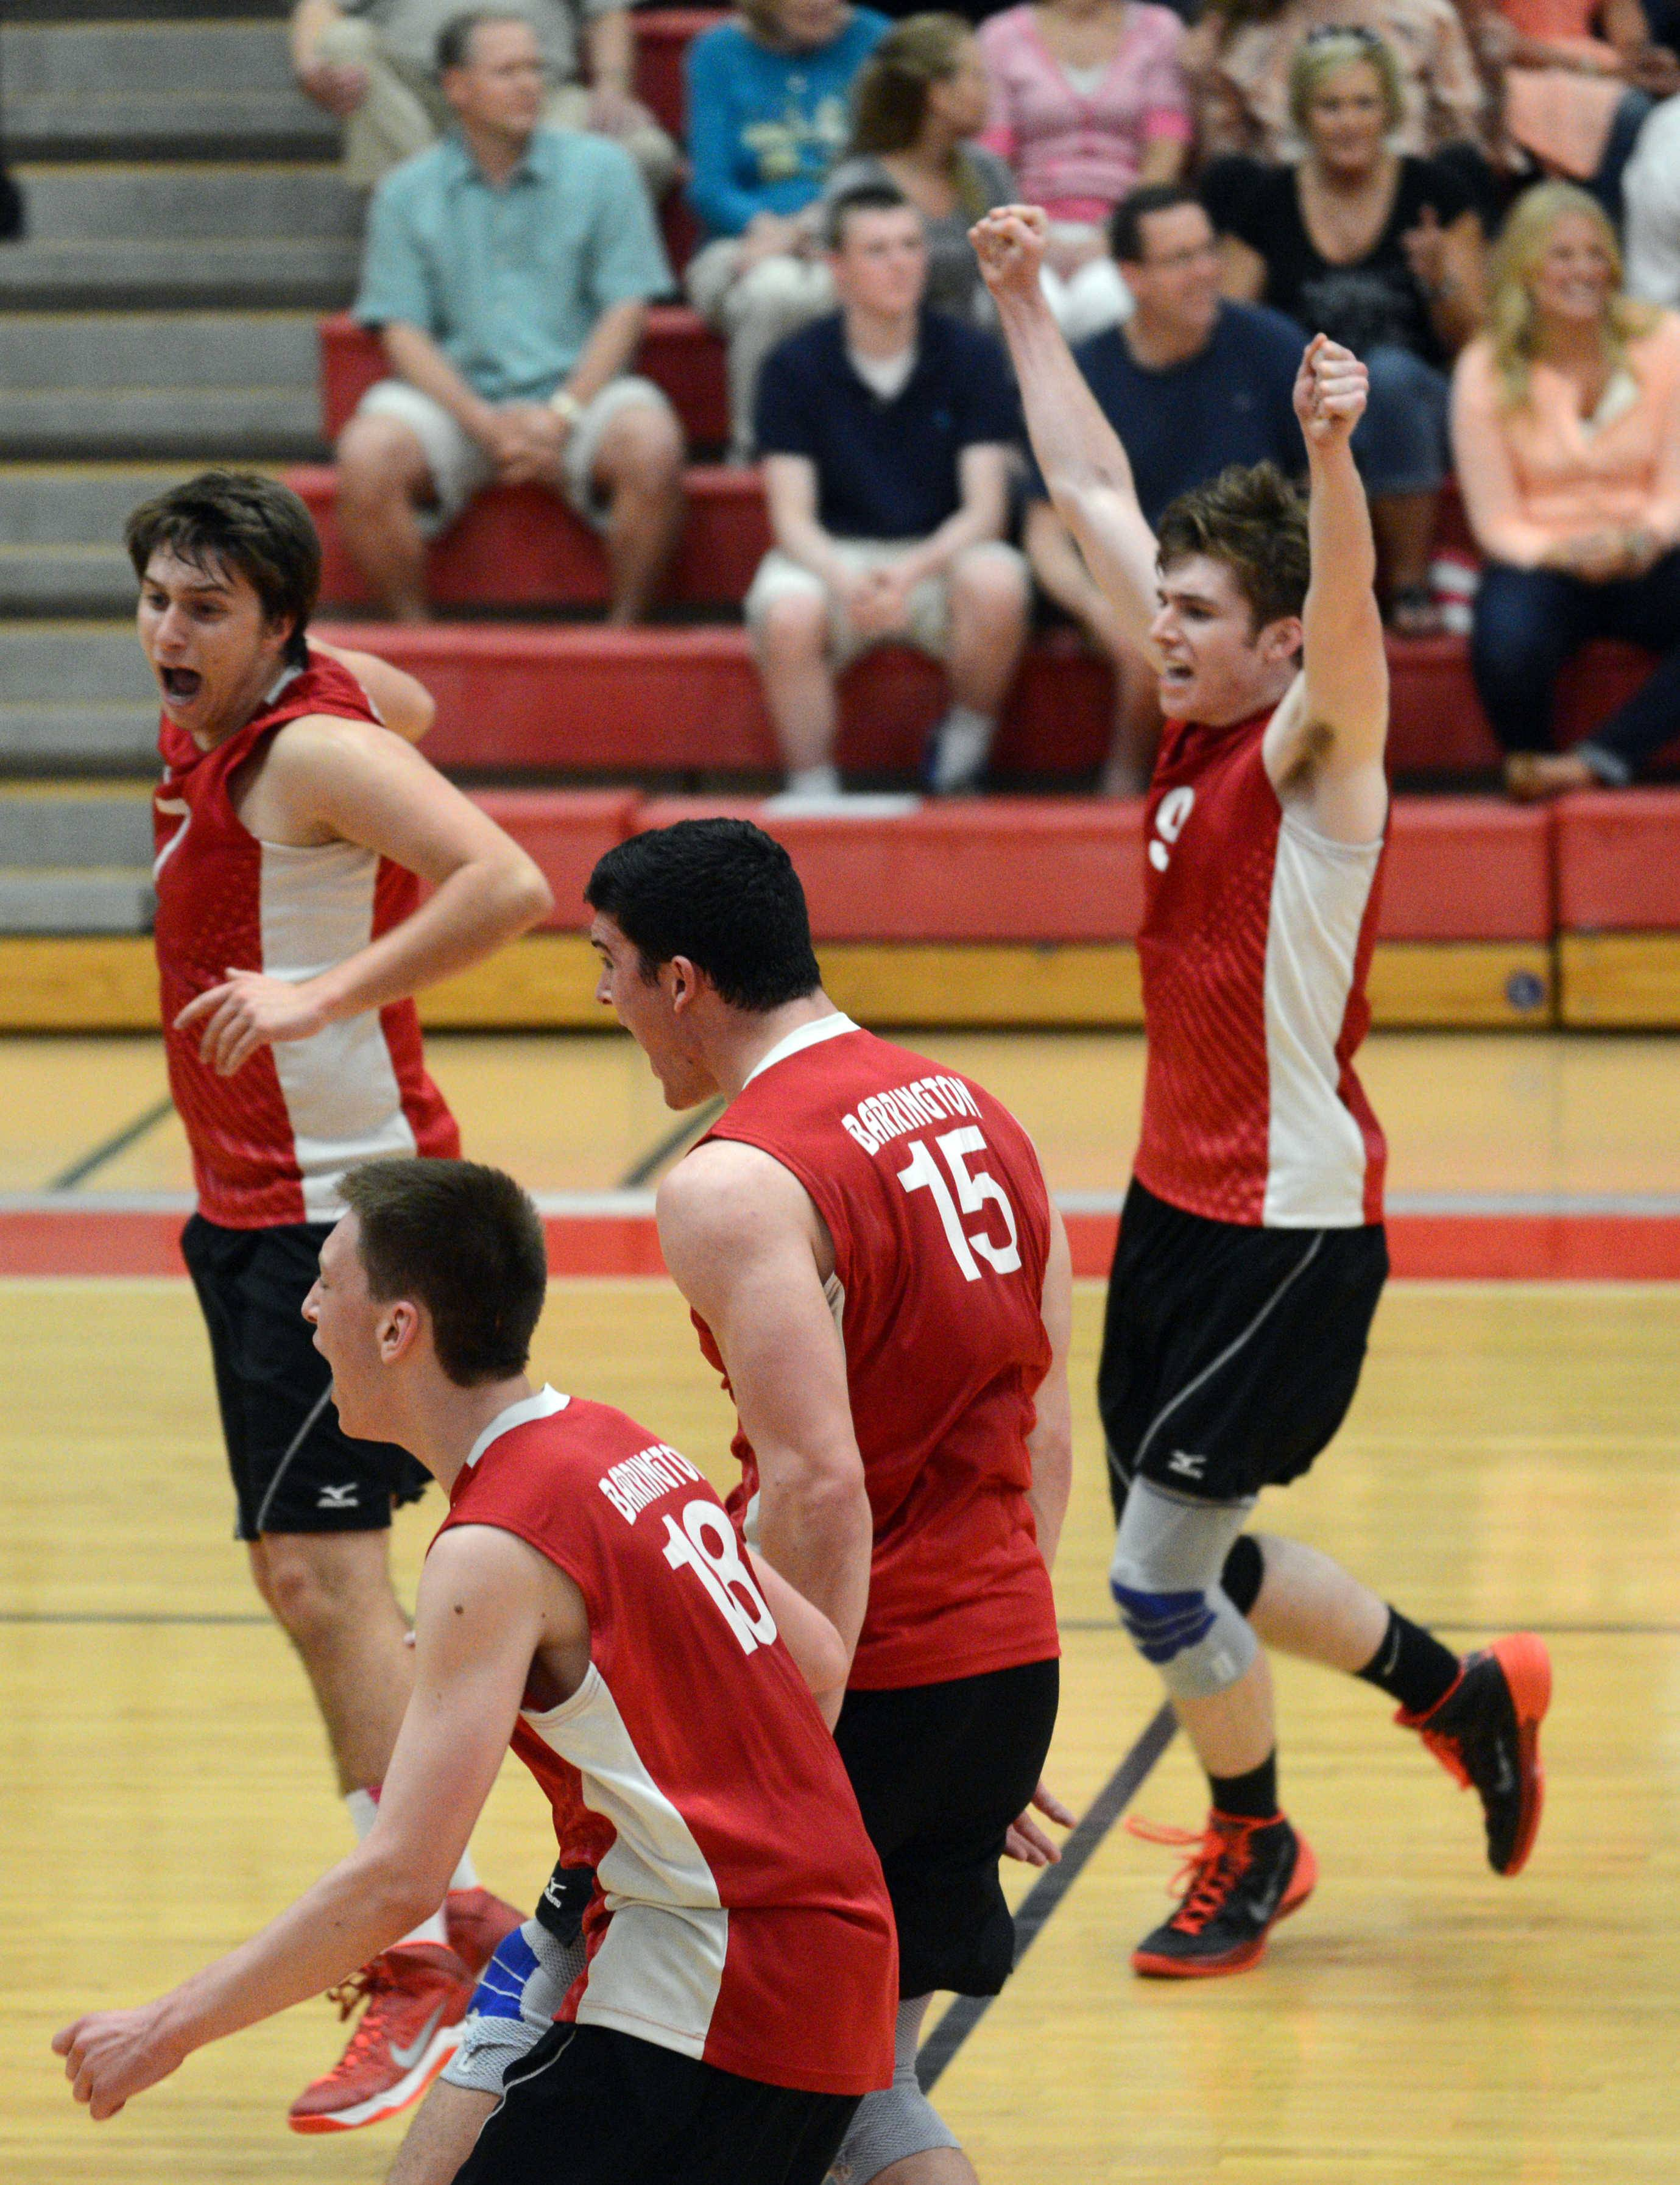 Barrington players begin to celebrate their win over Hersey in the MSL championship match.